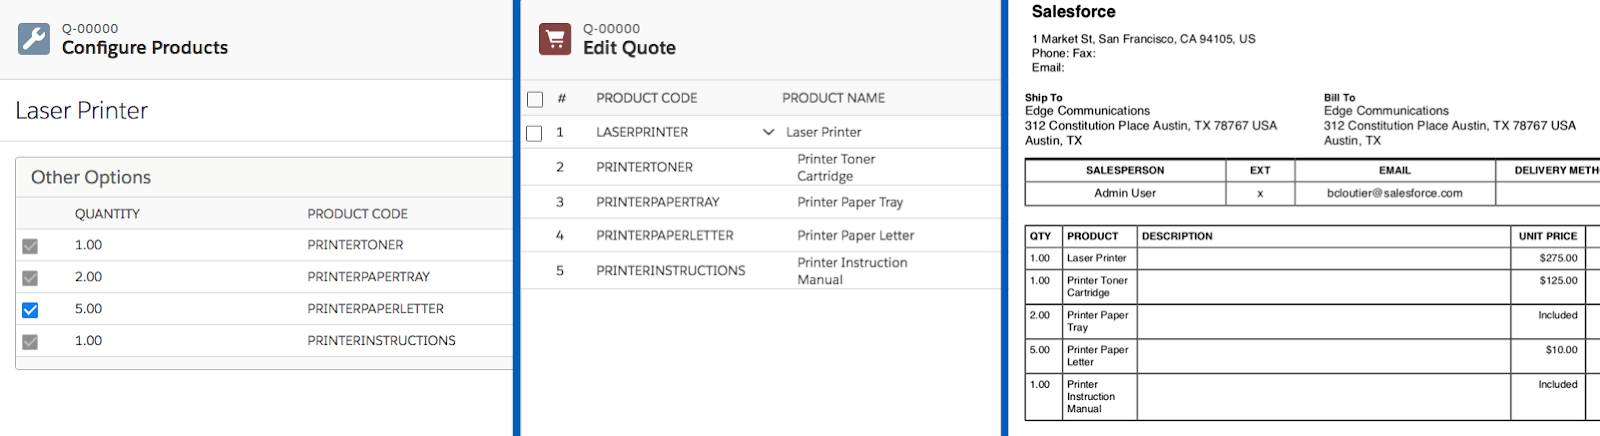 Configure Products Page, Quote Line Editor page, and generated document